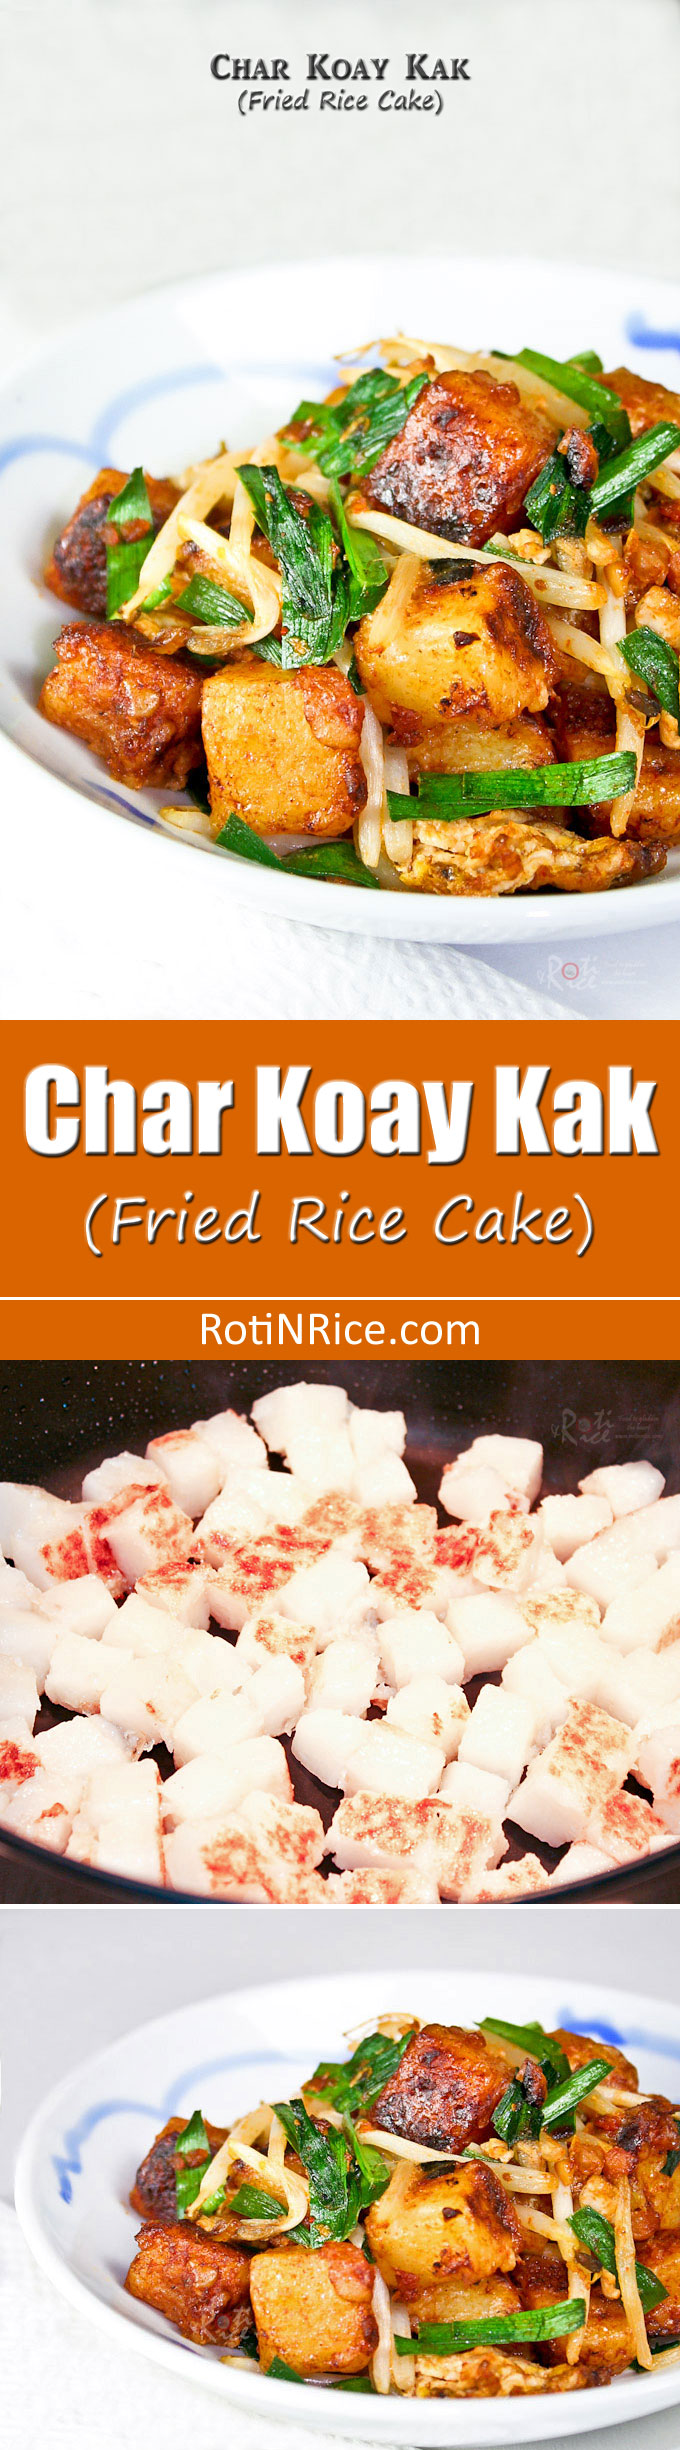 Prepare your own amazingly tasty Char Koay Kak (Fried Rice Cake), a popular Penang street food. Very quick and easy using prepackaged rice cake. | RotiNRice.com